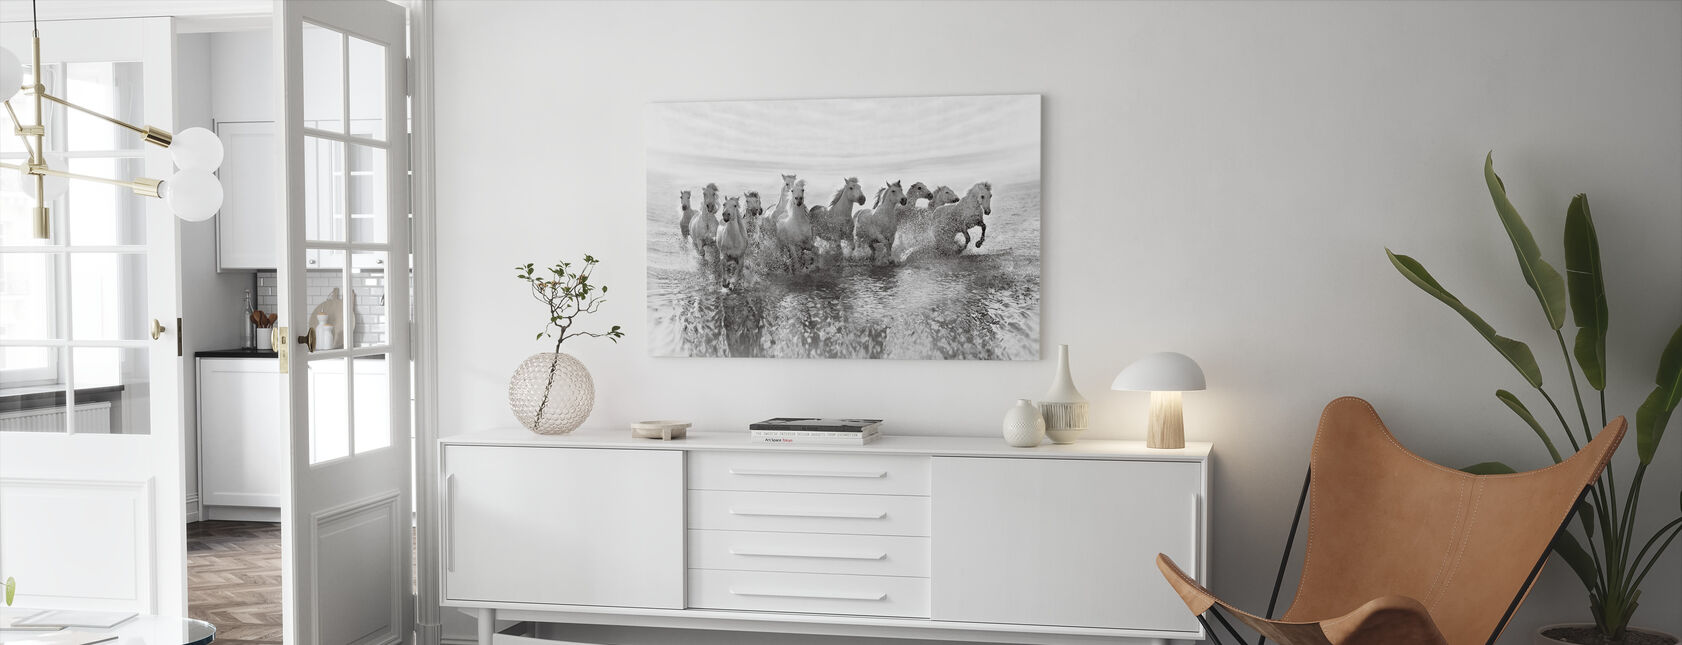 Illusion of Power (13 horse power though) - Canvas print - Living Room